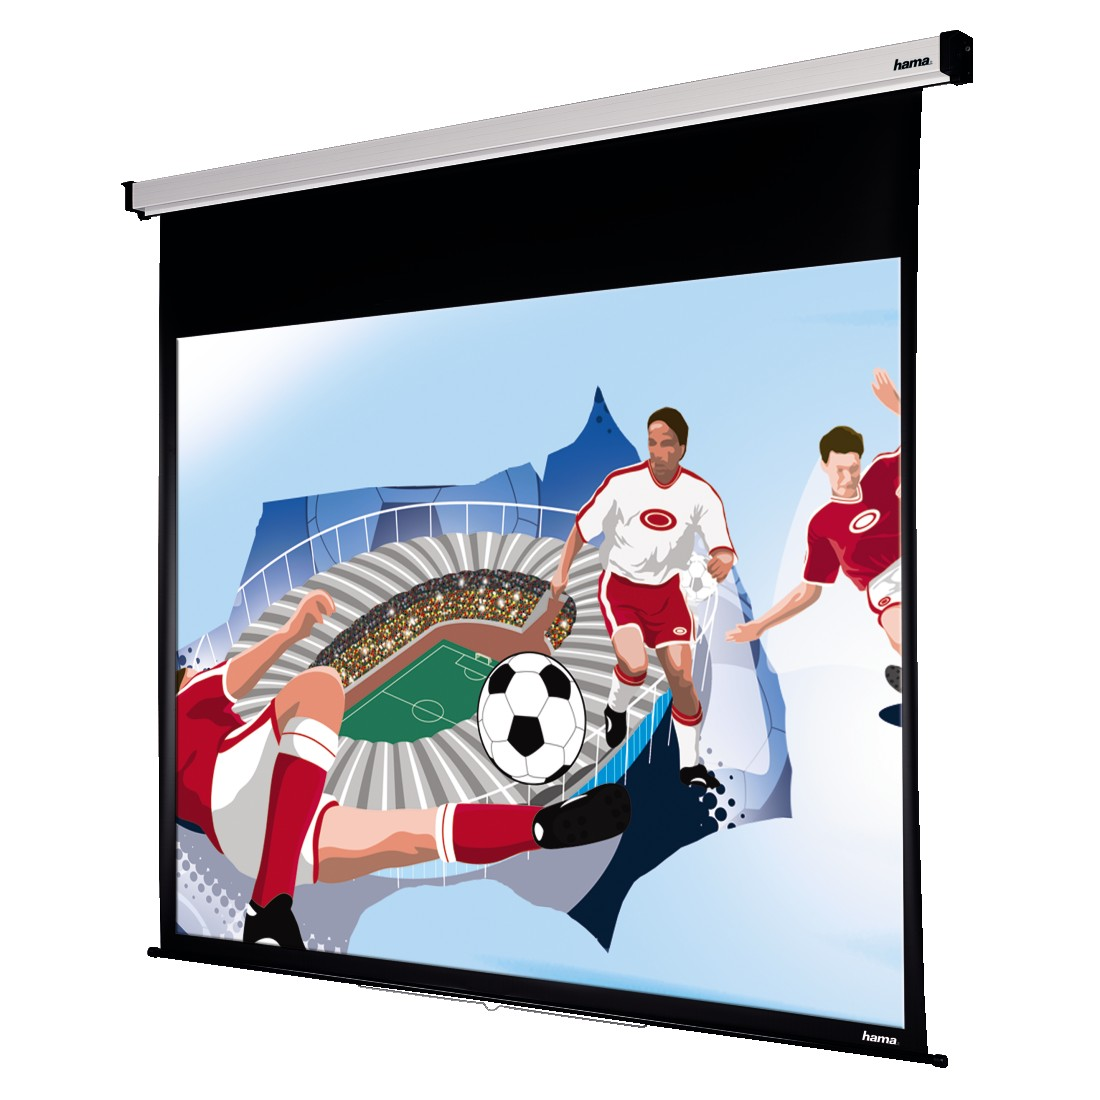 abx4 High-Res Image4 - Hama, Roller Projection Screen, 240 x 195 cm, 4:3